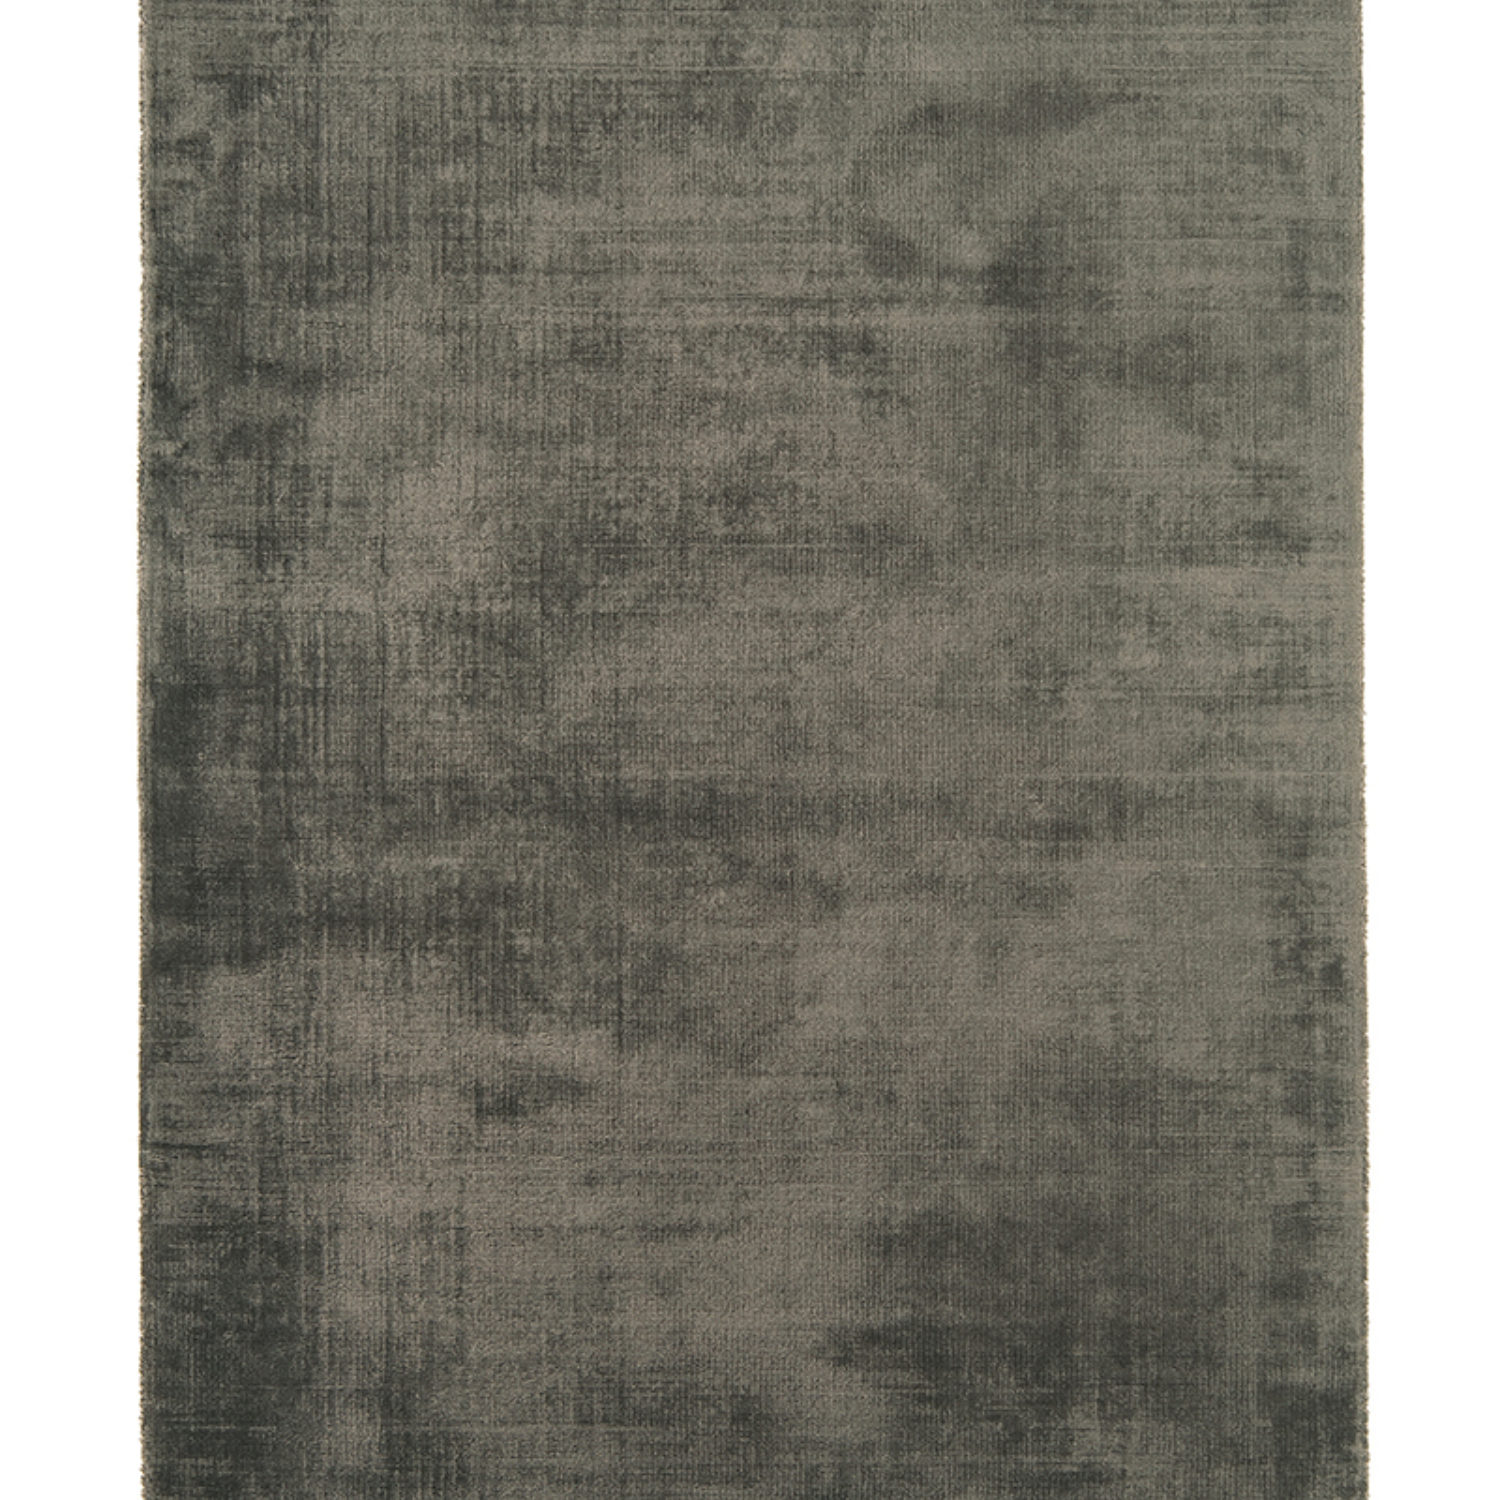 Hand sheared by artisans create a distressed lustrous look that is ideal for both modern and classic homes